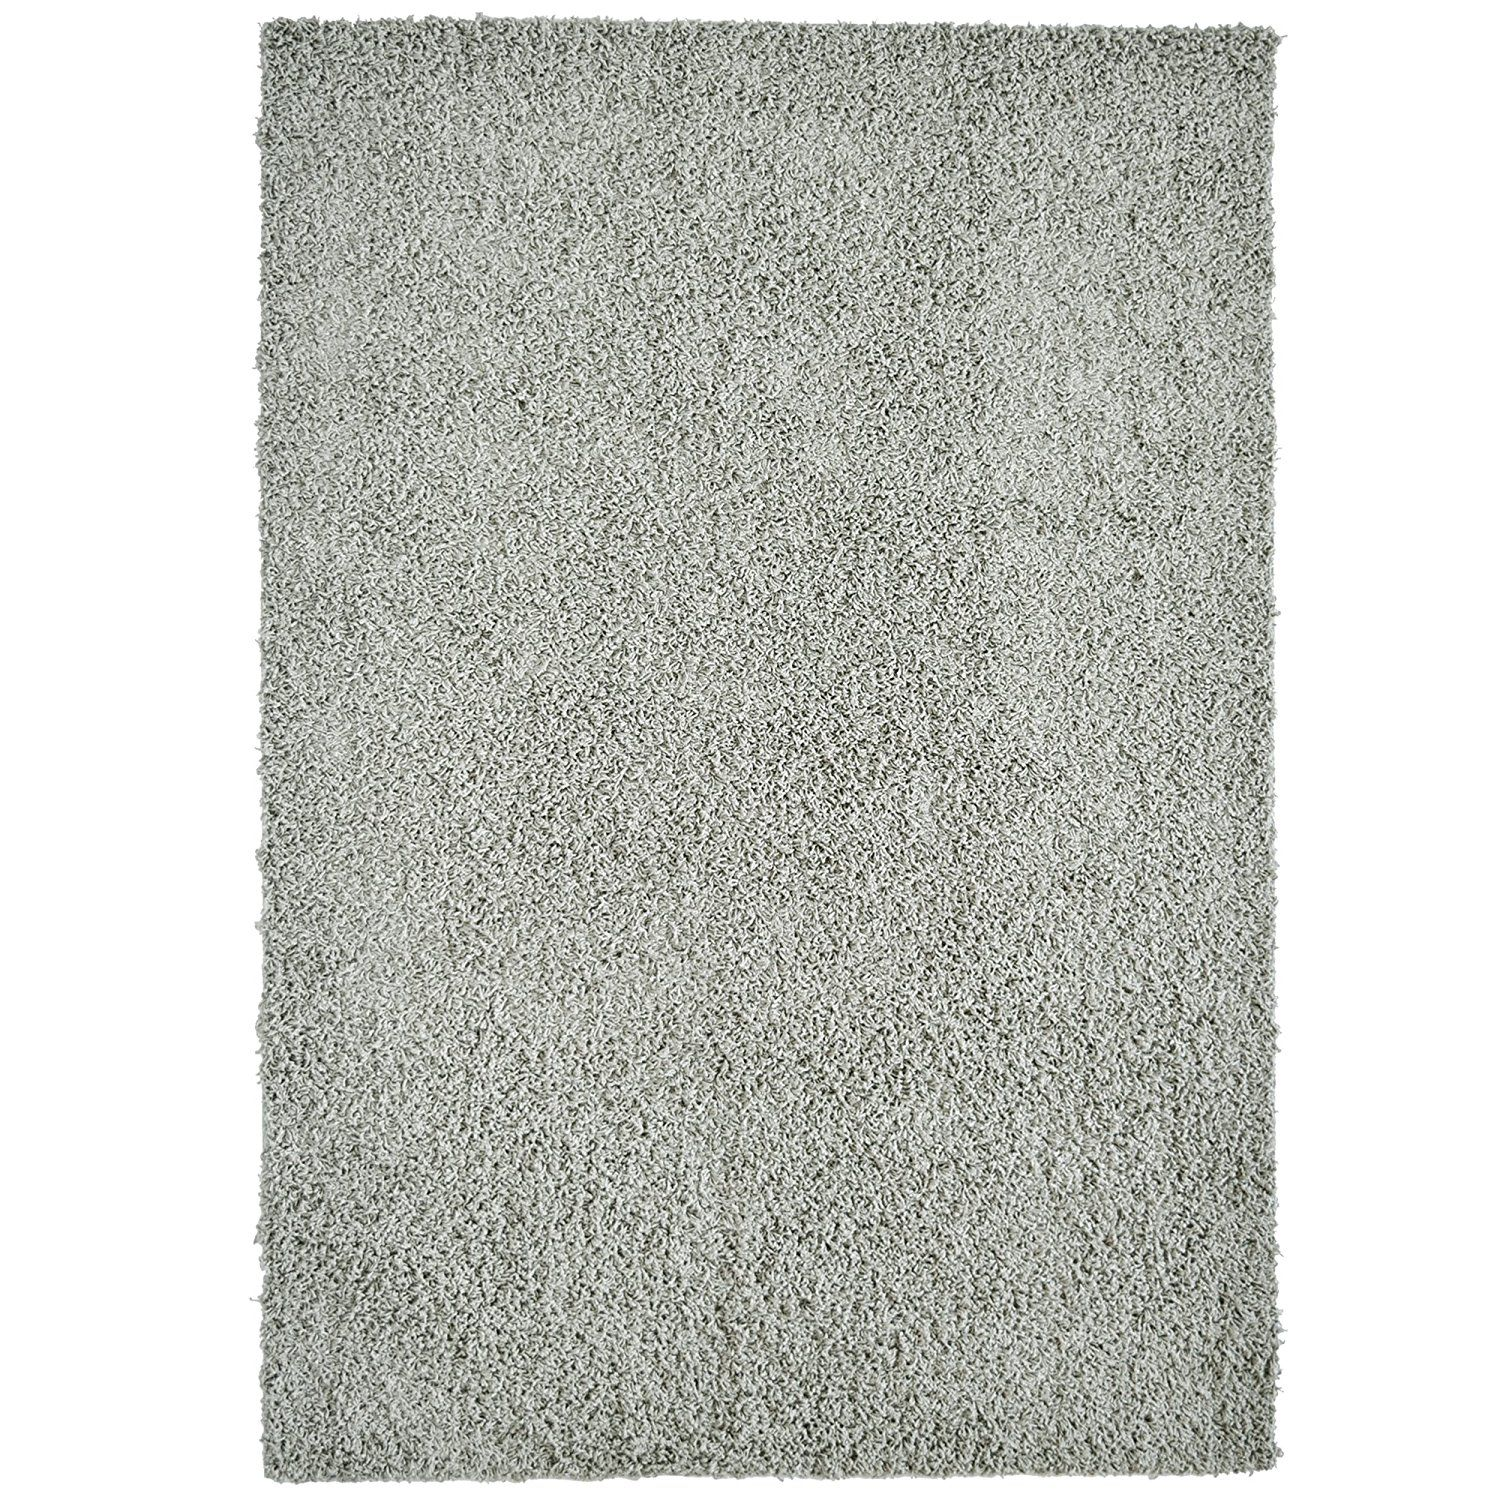 shaggy rug cozy u0026 soft kids shag area rug solid color grey affiliate link inexpensive